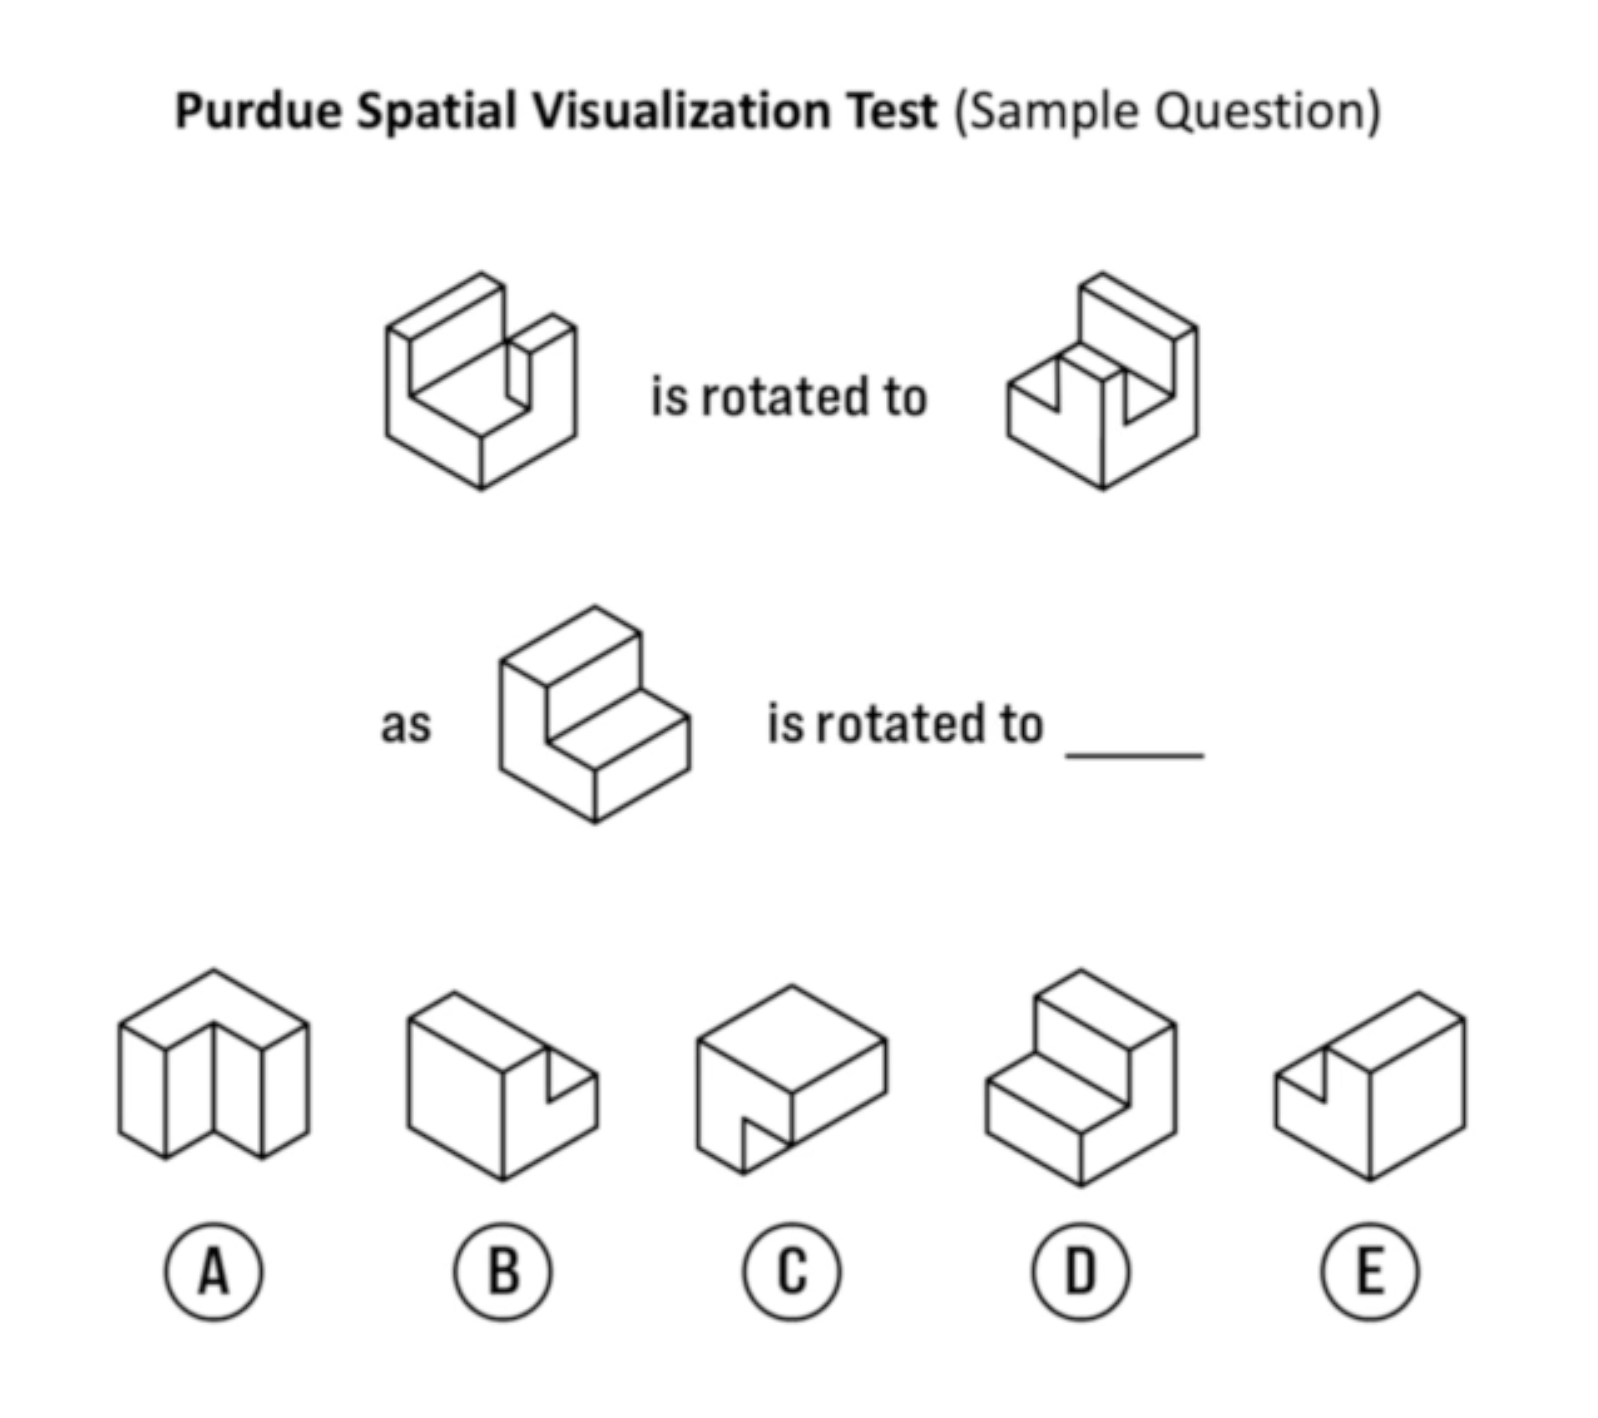 purdue-spatial-visualization-test-example